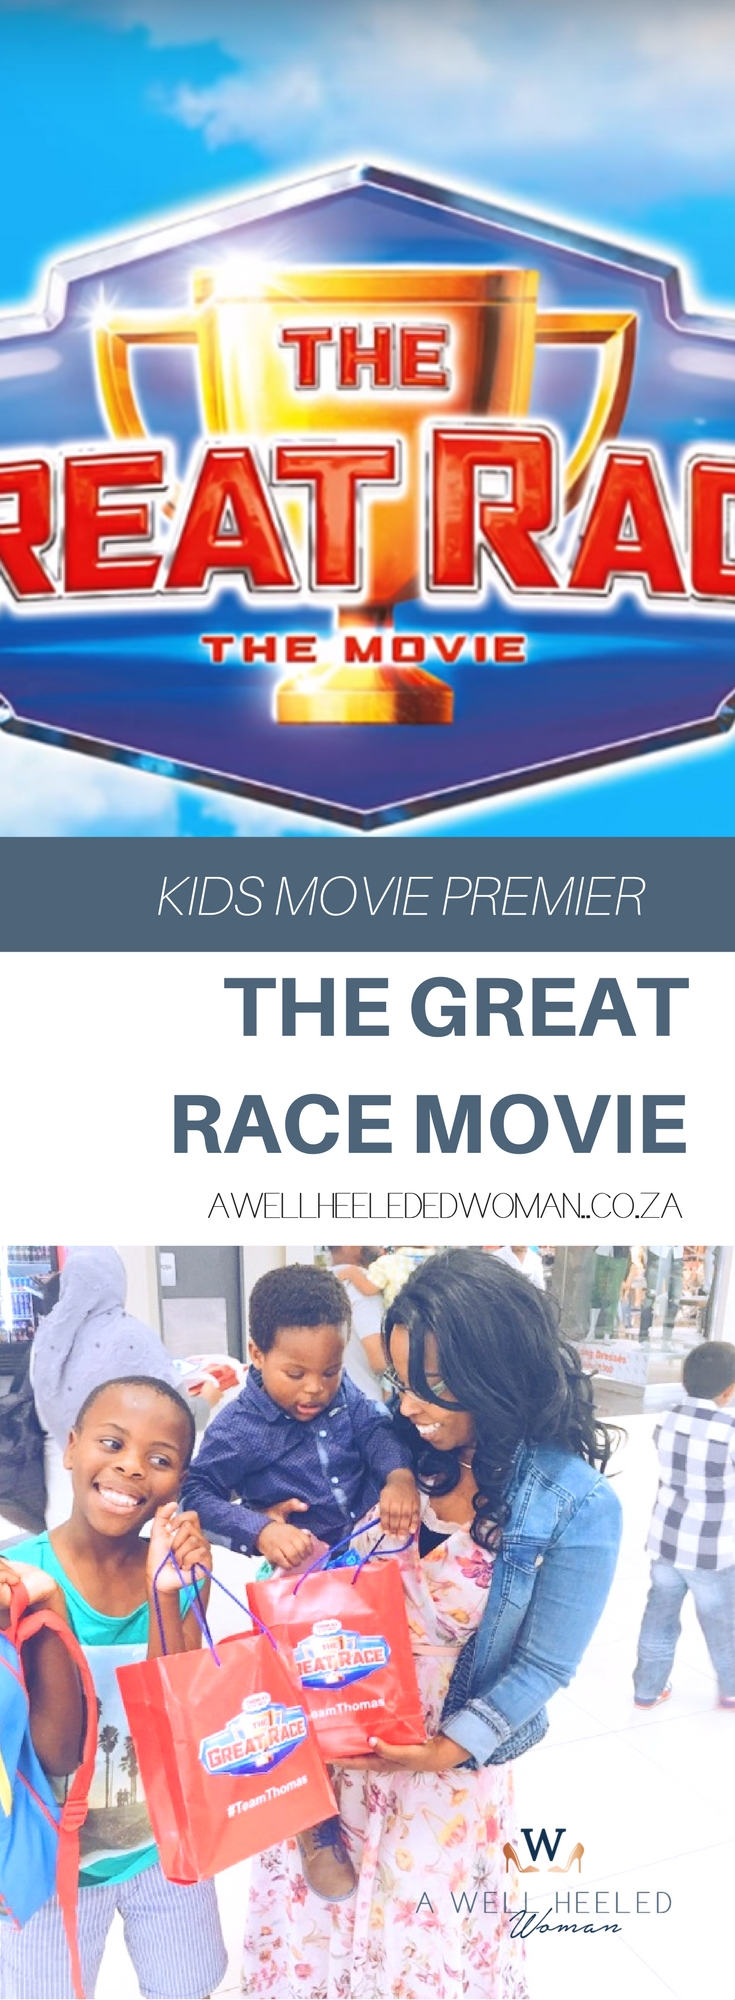 Premier of the Thomas Great Race Movie